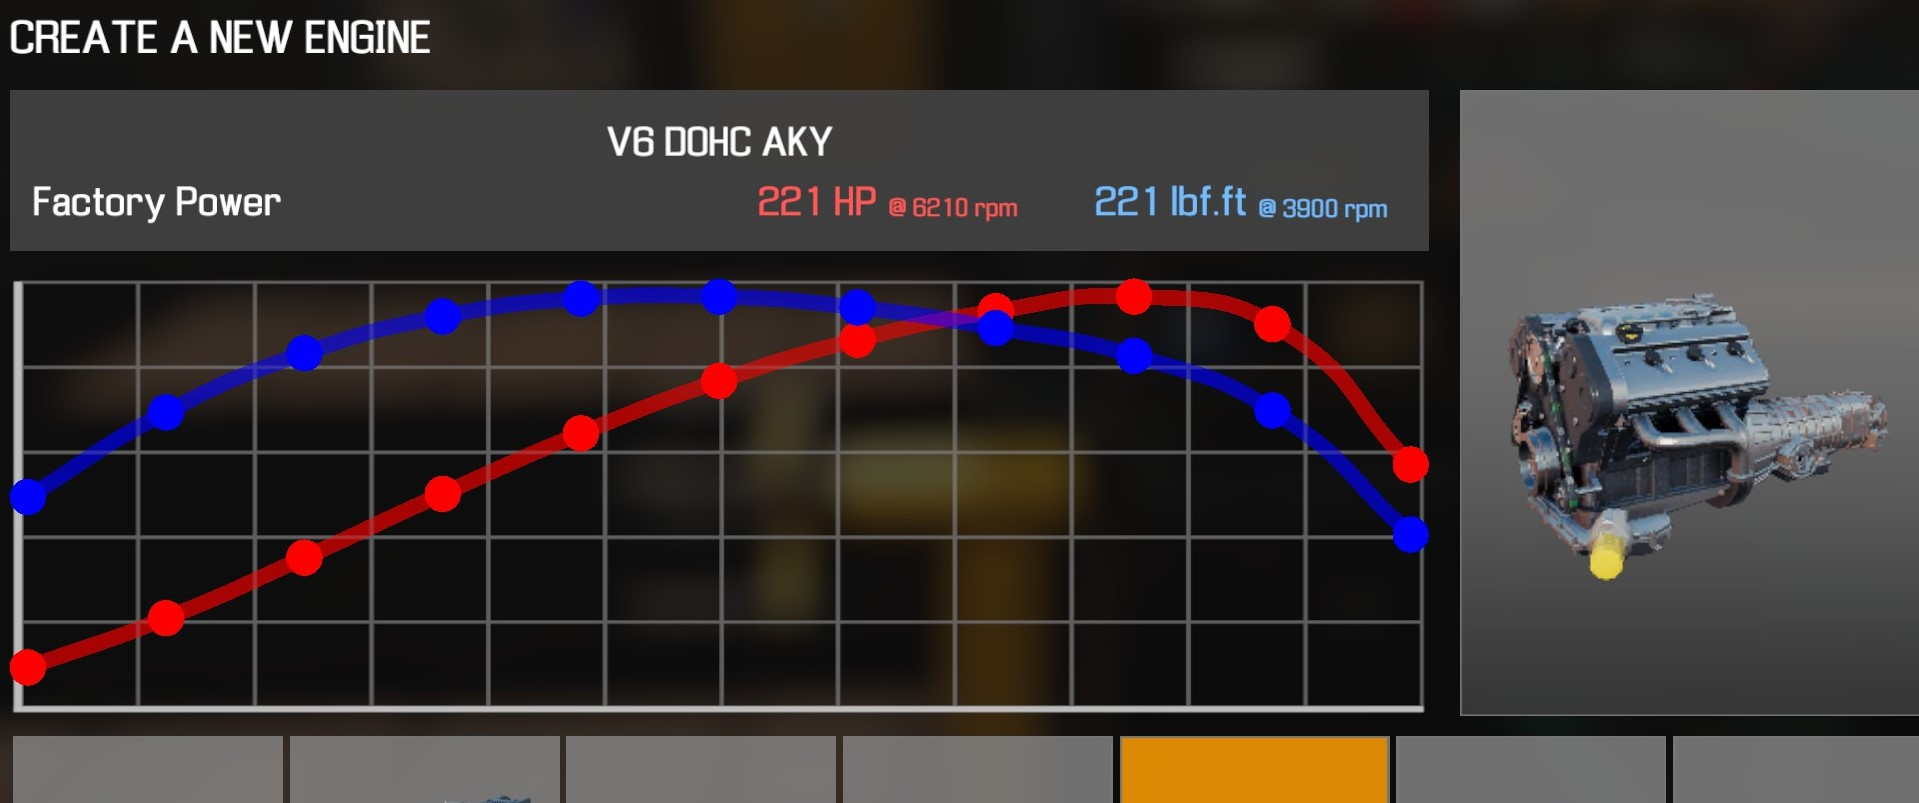 Car Mechanic Simulator 2021 - How to Buy Engine Parts and All Engines in Game Information - V6 DOHC AKY - 39260B8